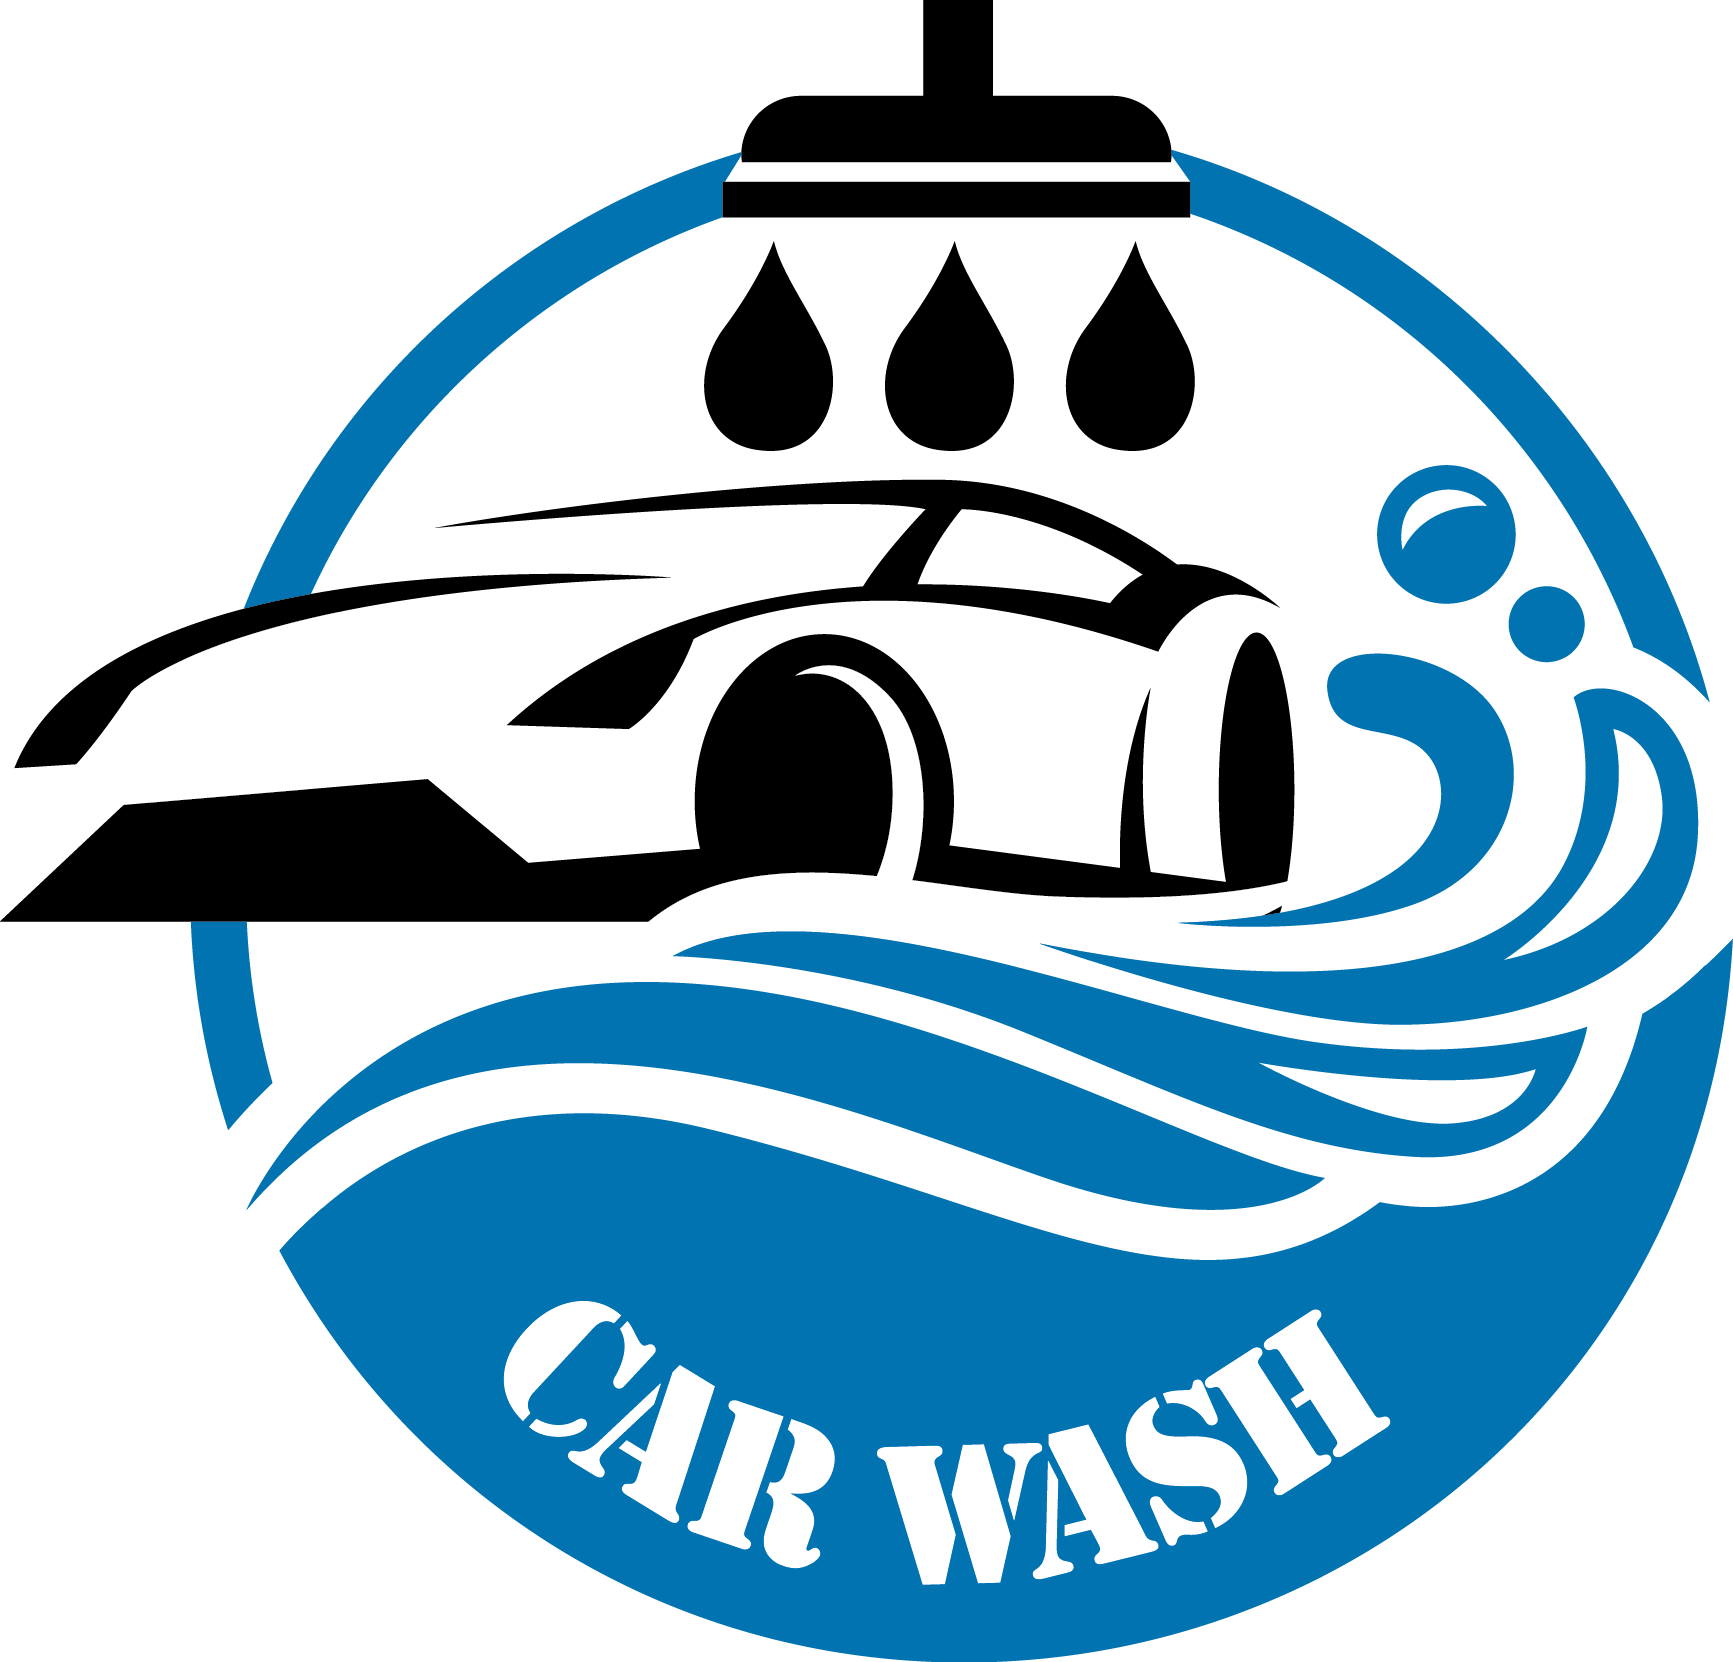 car wash logo png